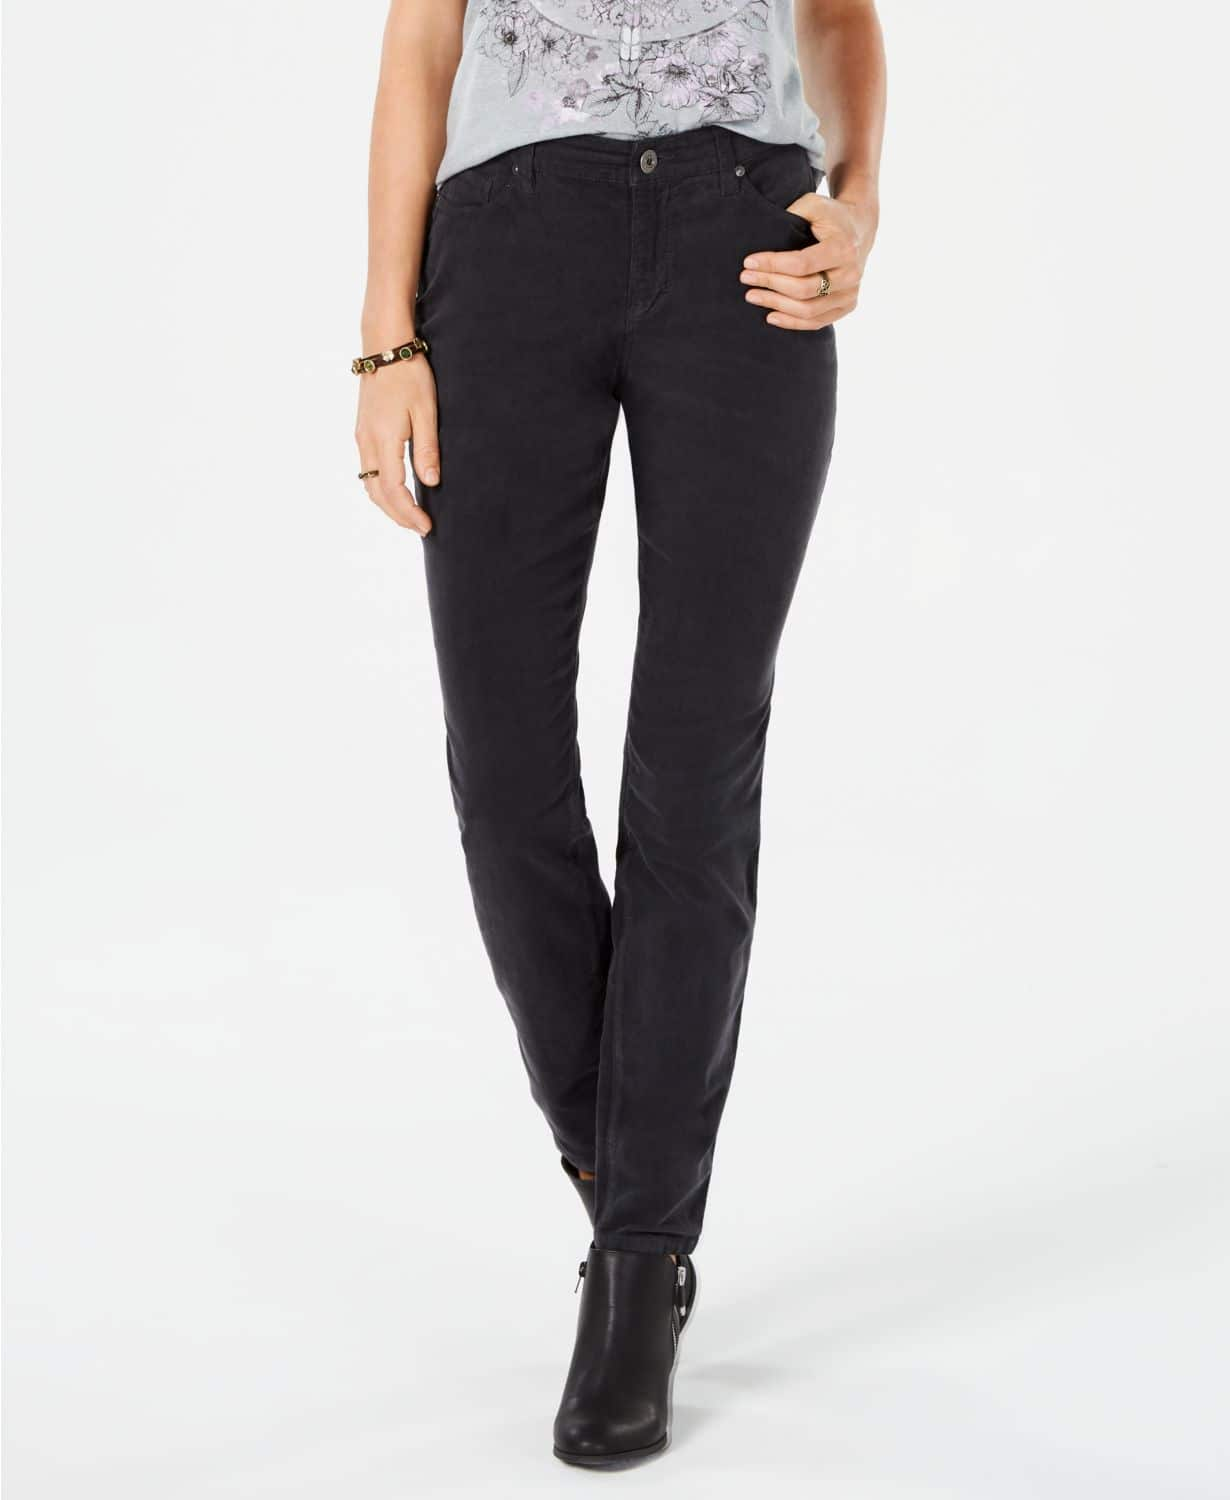 Style & Co Curvy Corduroy Skinny Jeans (3 Colors) $9.86